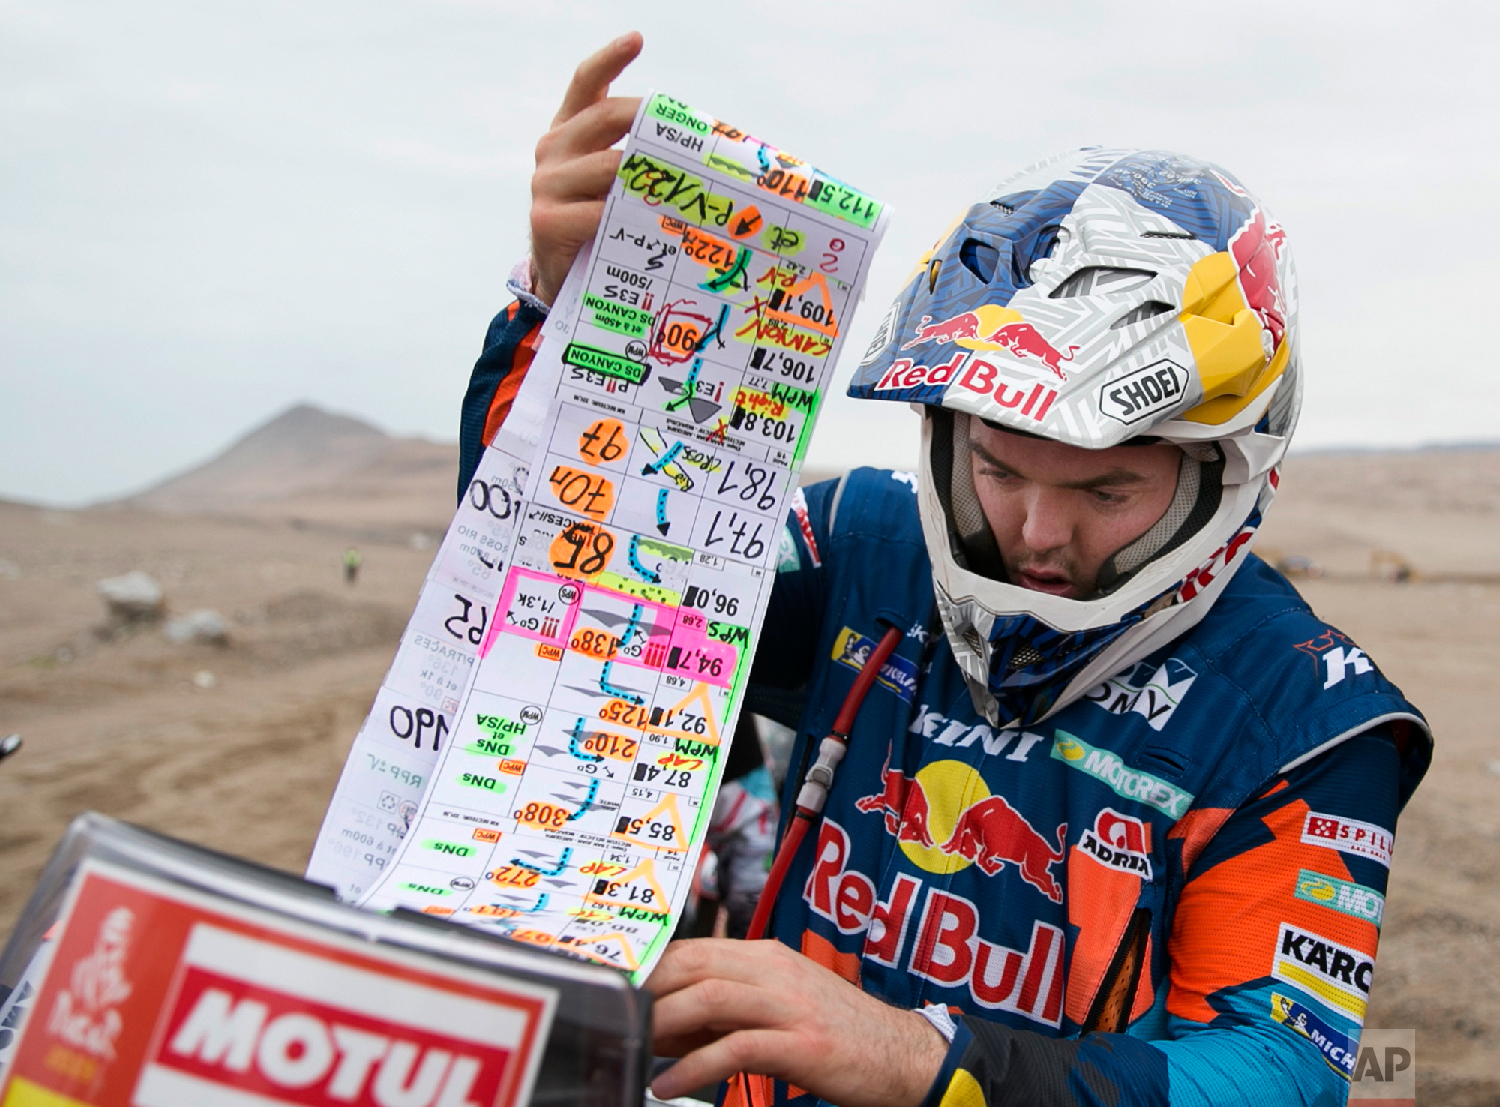 An spectator takes a photograph of KTM motorbike rider Matthias Walkner of Austria checking his road book a the start of the third stage of the Dakar Rally between San Juan de Marcona and Arequipa, Peru, Jan. 9, 2019. (AP Photo/Ricardo Mazalan)